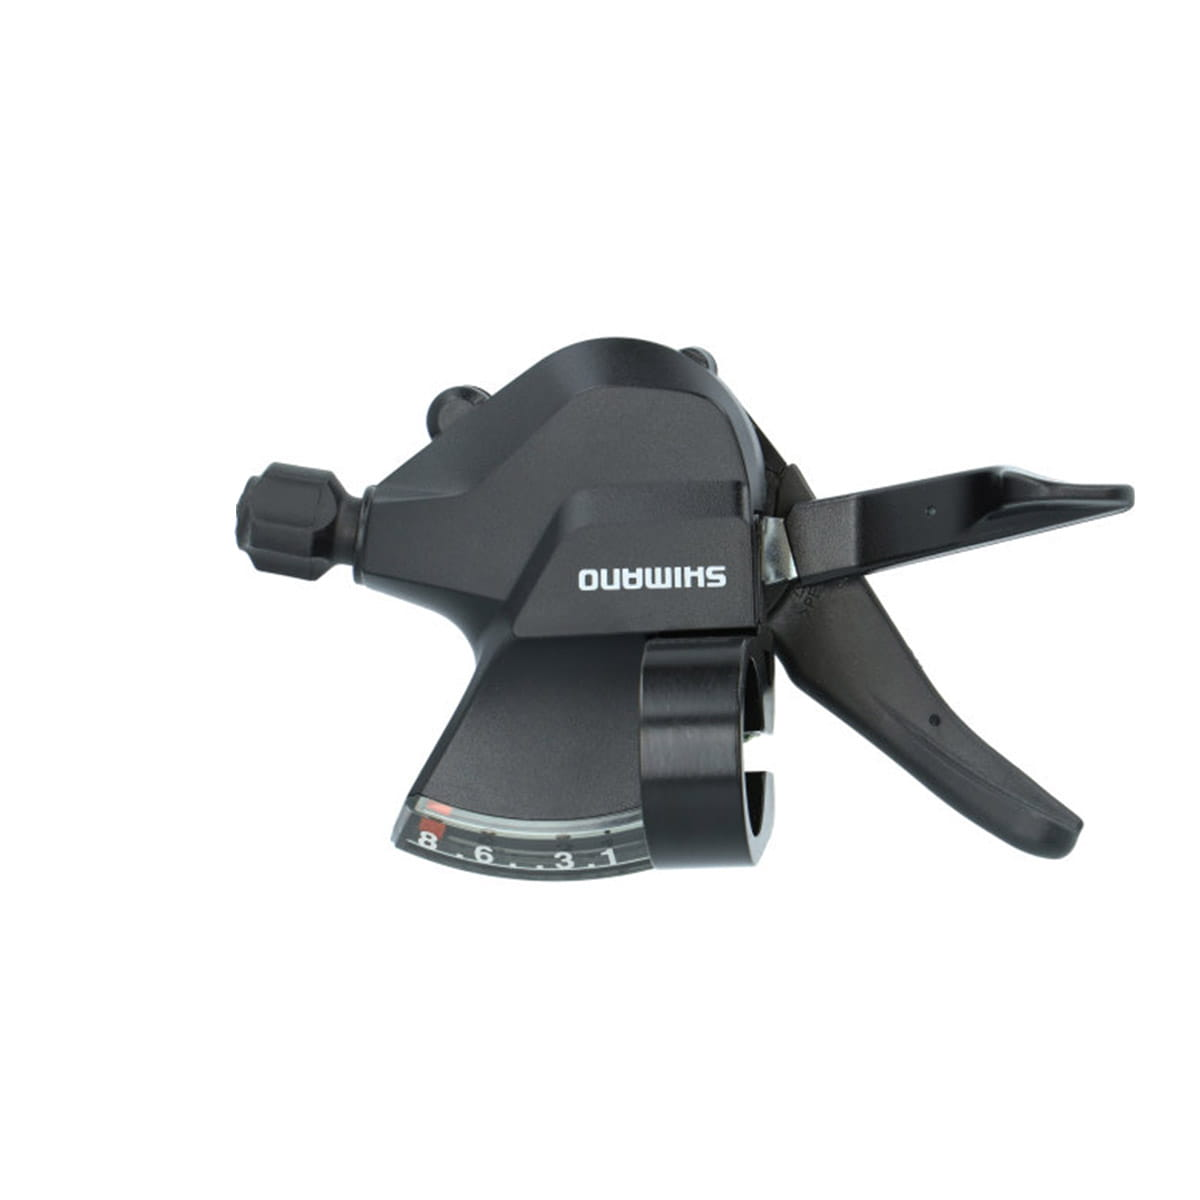 Right SHIMANO SL-M315-8R 8-Speed RapidFire Plus Bicycle Shift Lever with Optical Gear Display ESLM3158RA